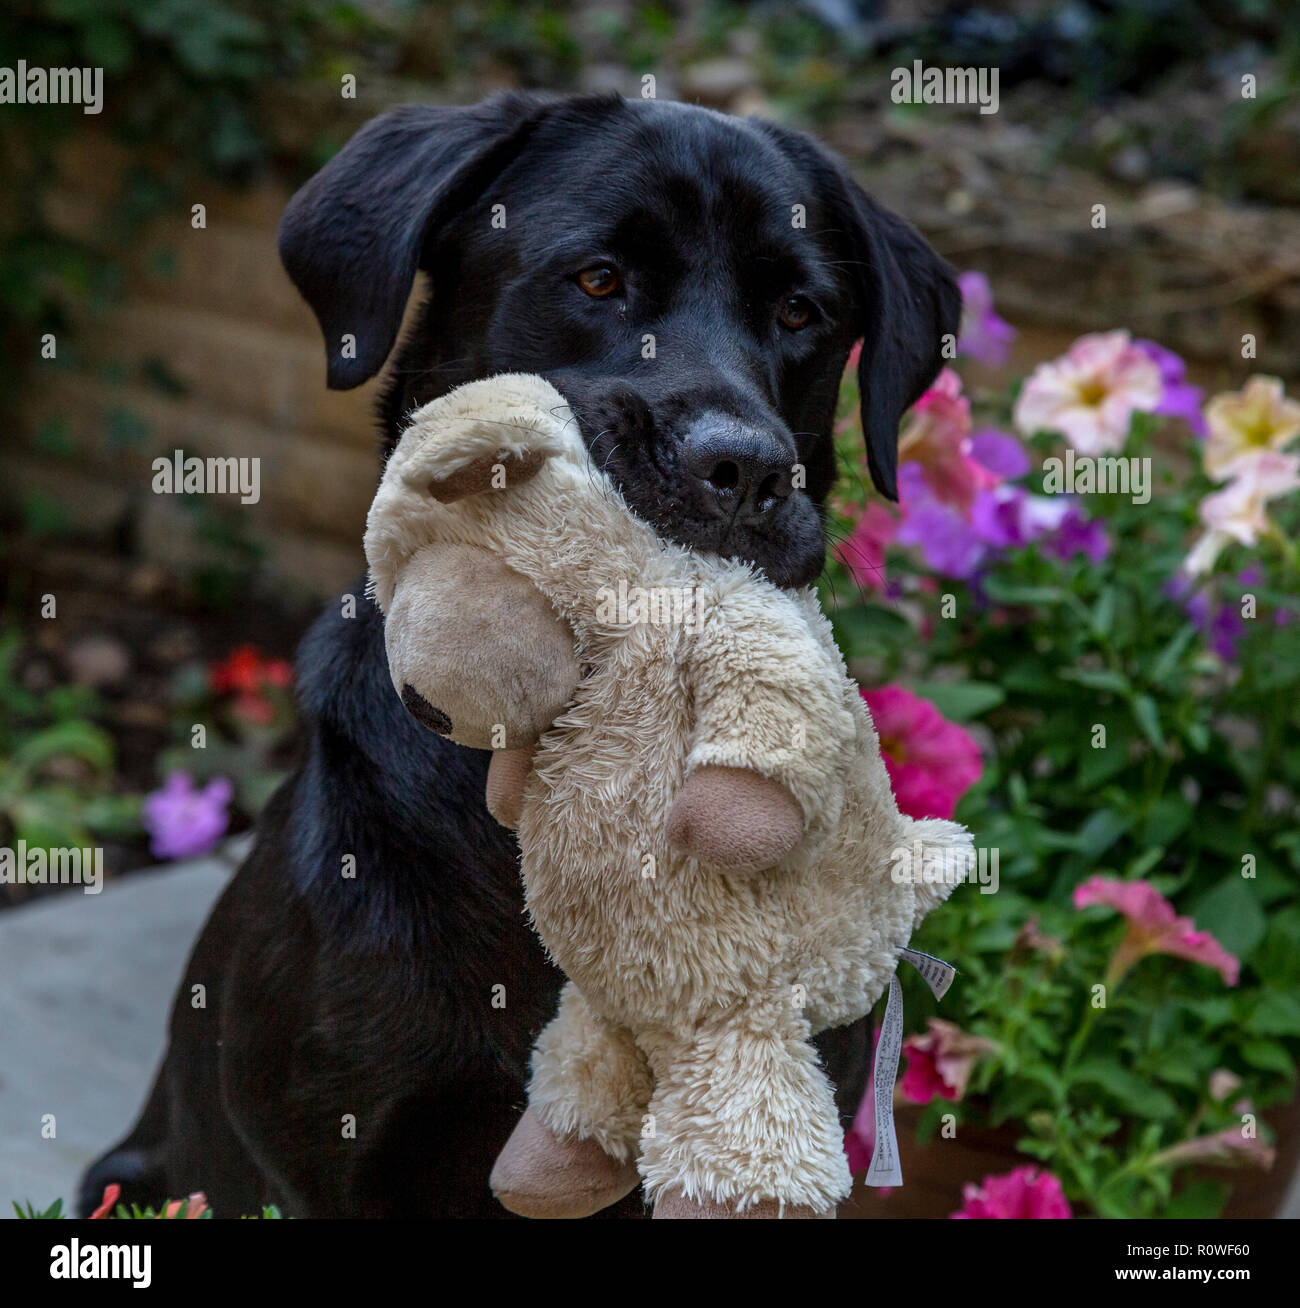 A black labrador retriever holding a soft toy in his mouth. - Stock Image